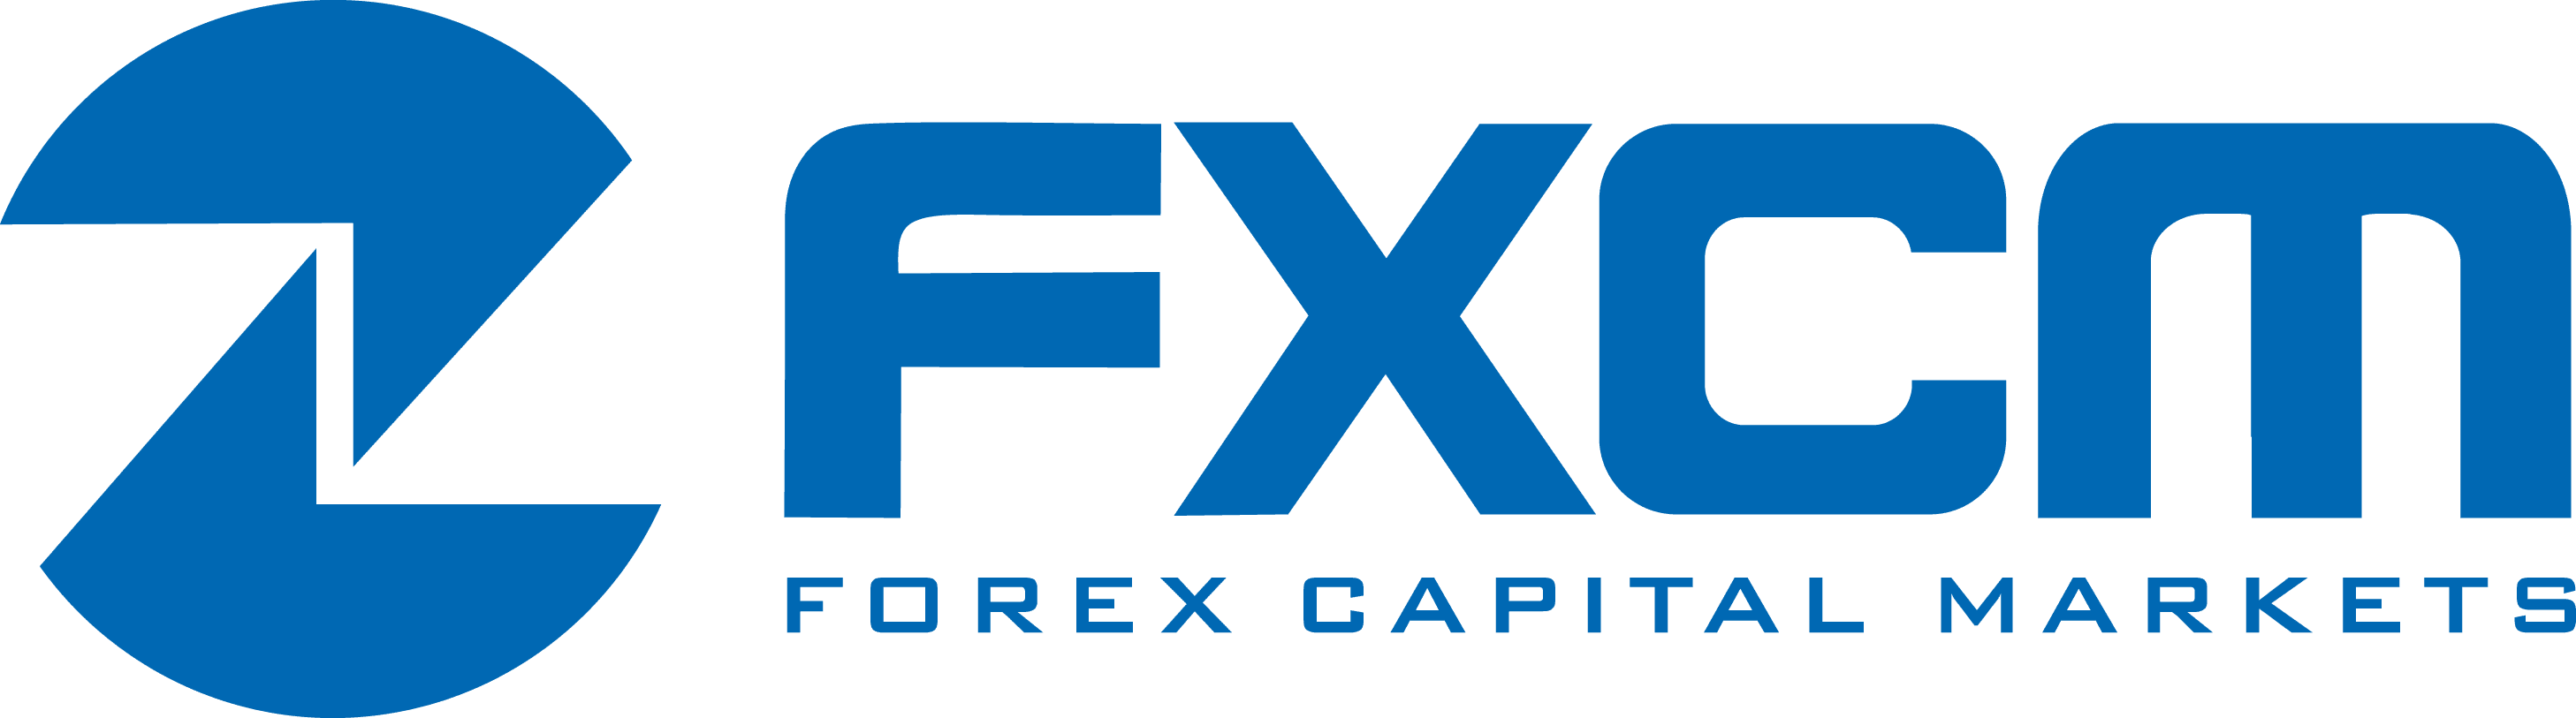 FXCM Witnessed Lower BTC/USD Spreads for Trades in August